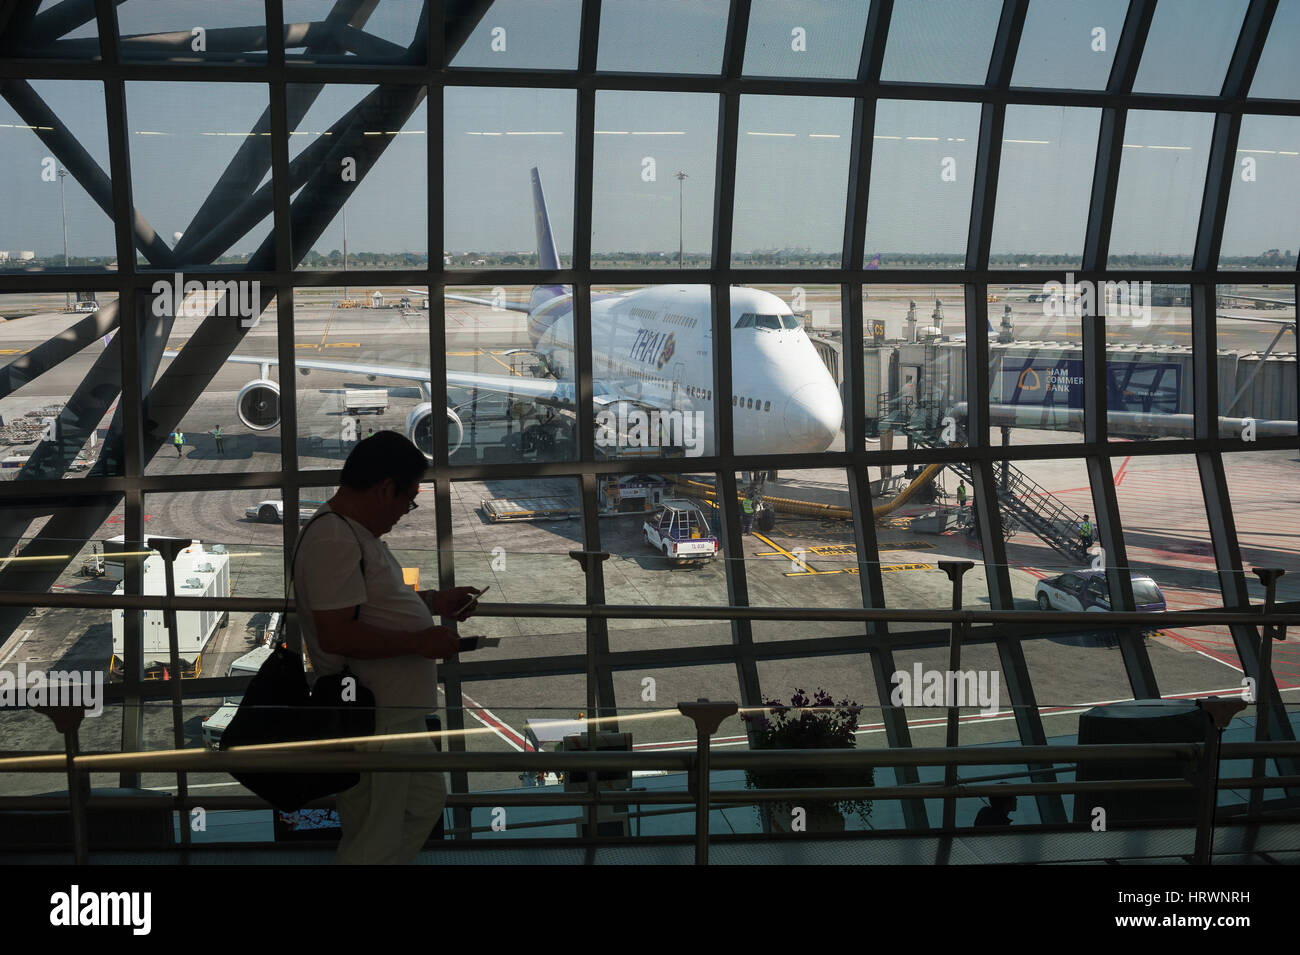 25.01.2017, Bangkok, Thailand, Asia - A Thai Airways passenger plane is parked at a gate at Bangkok's Suvarnabhumi - Stock Image